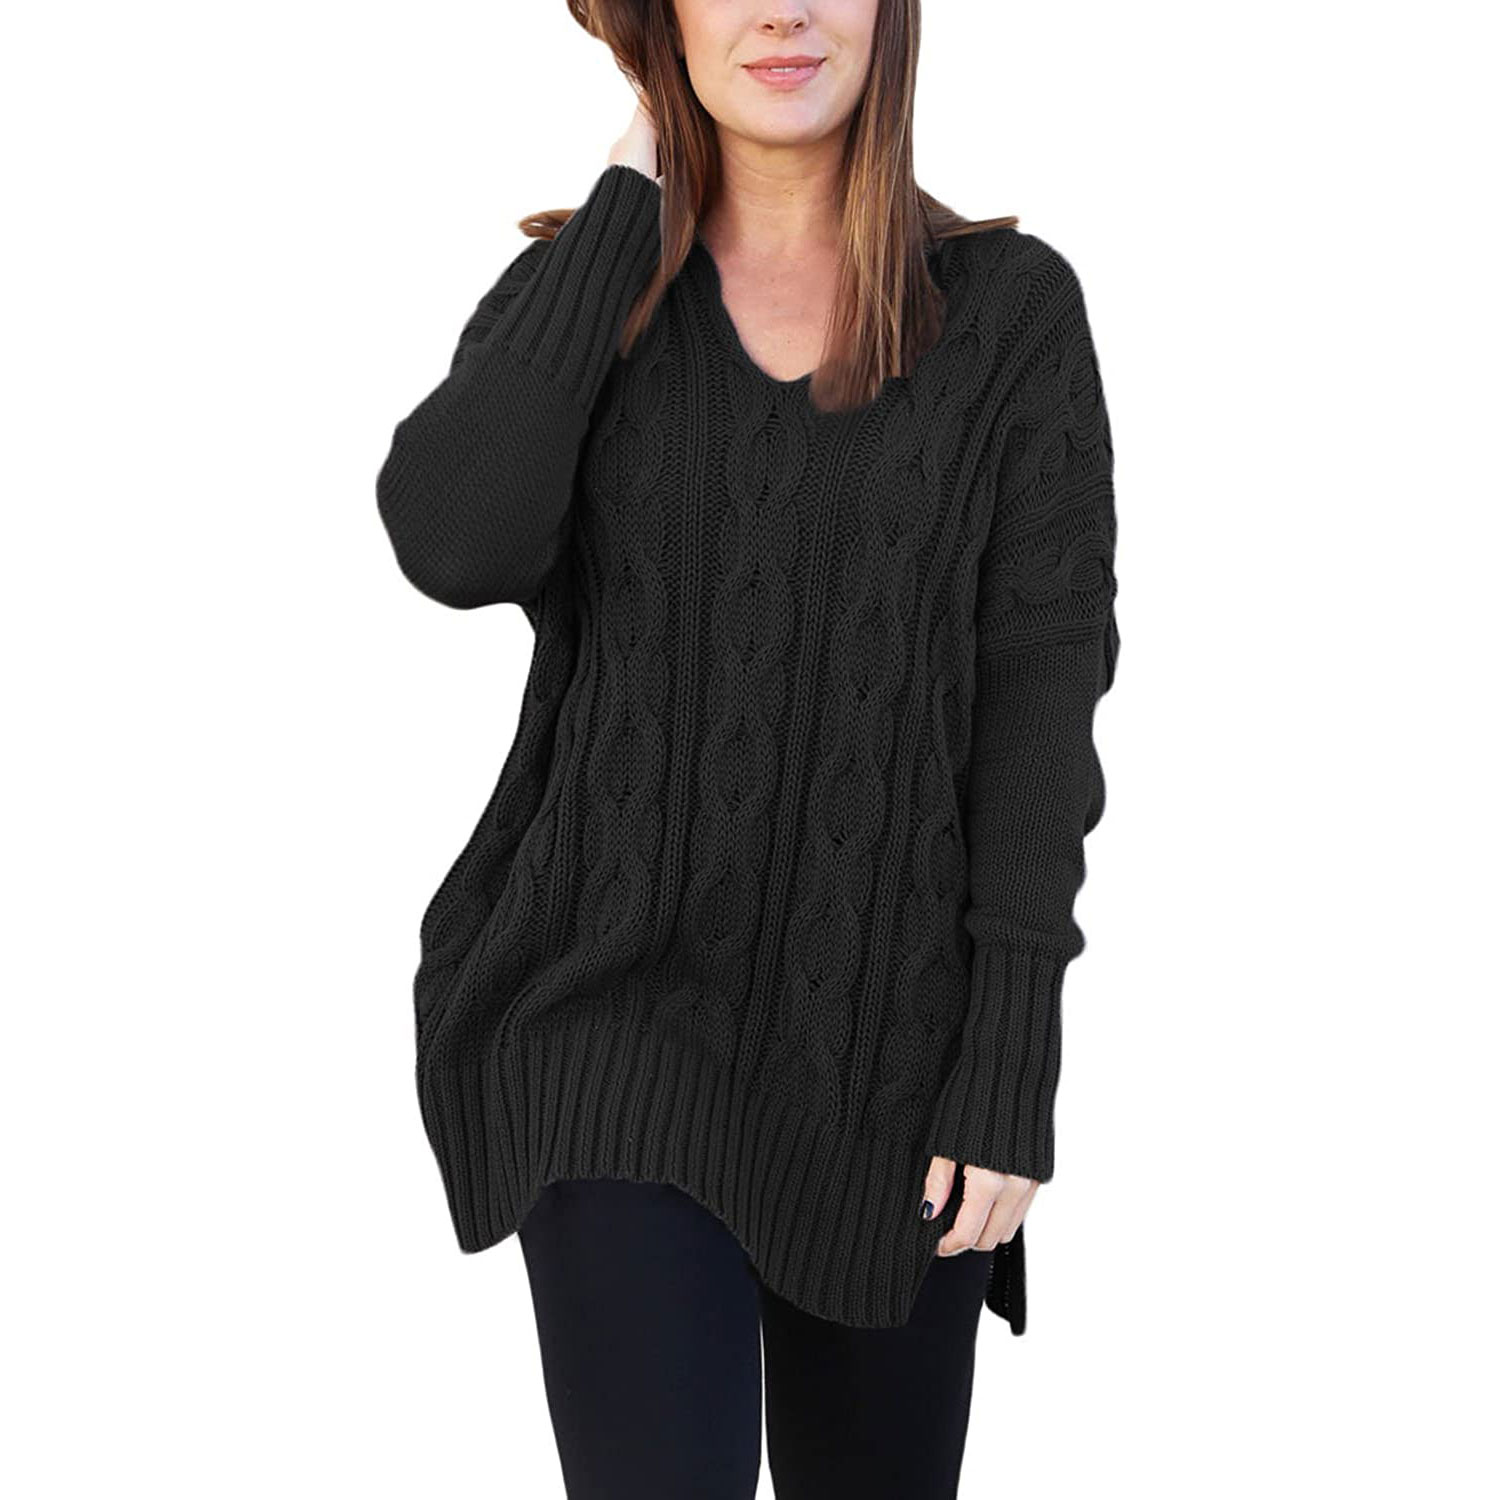 sidefeel women casual v-neck loose fit knit sweater pullover top